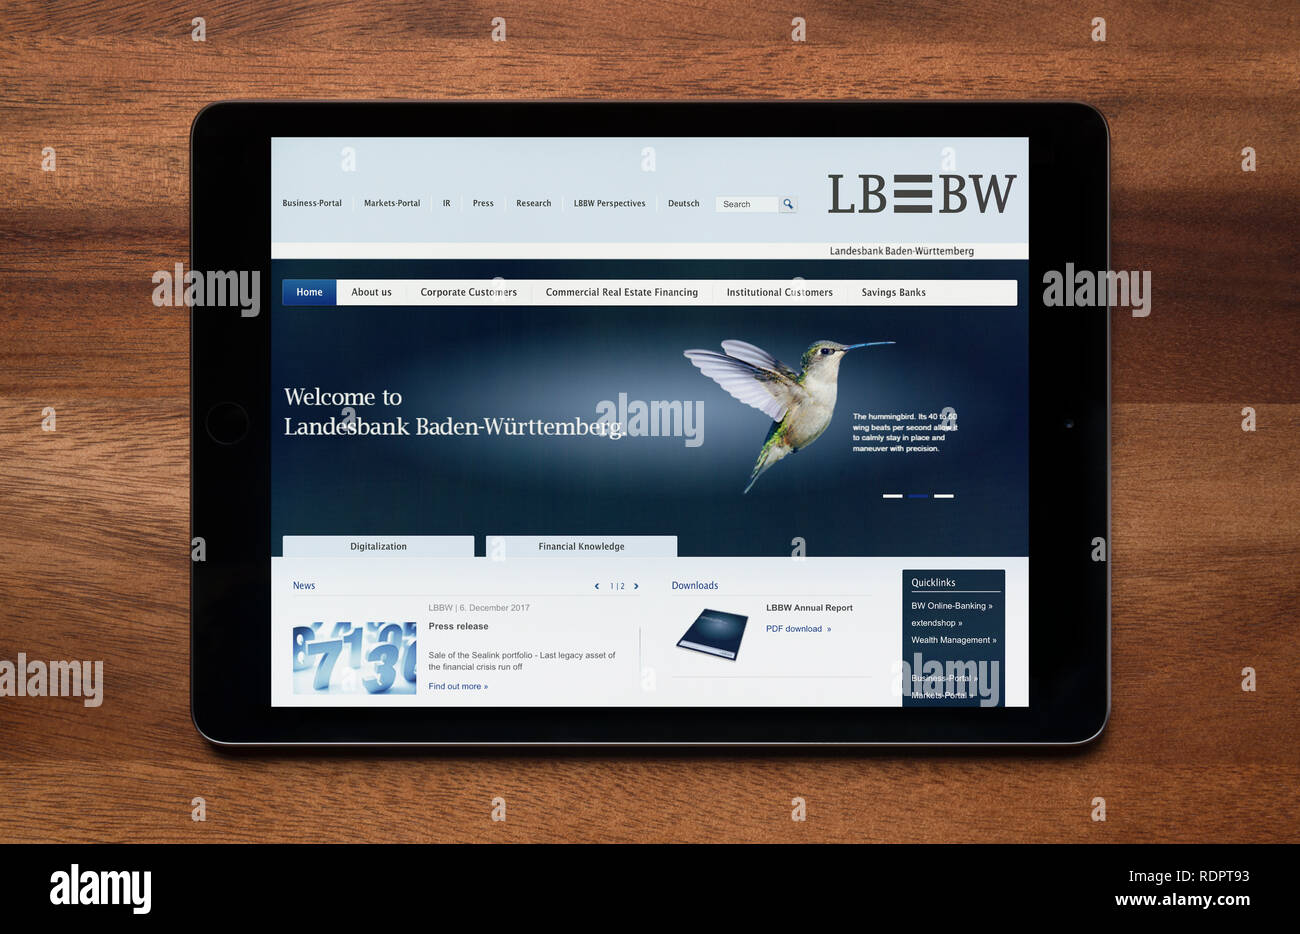 The website of LB BW (Landesbank Baden-Württemberg) is seen on an iPad tablet, which is resting on a wooden table (Editorial use only). - Stock Image